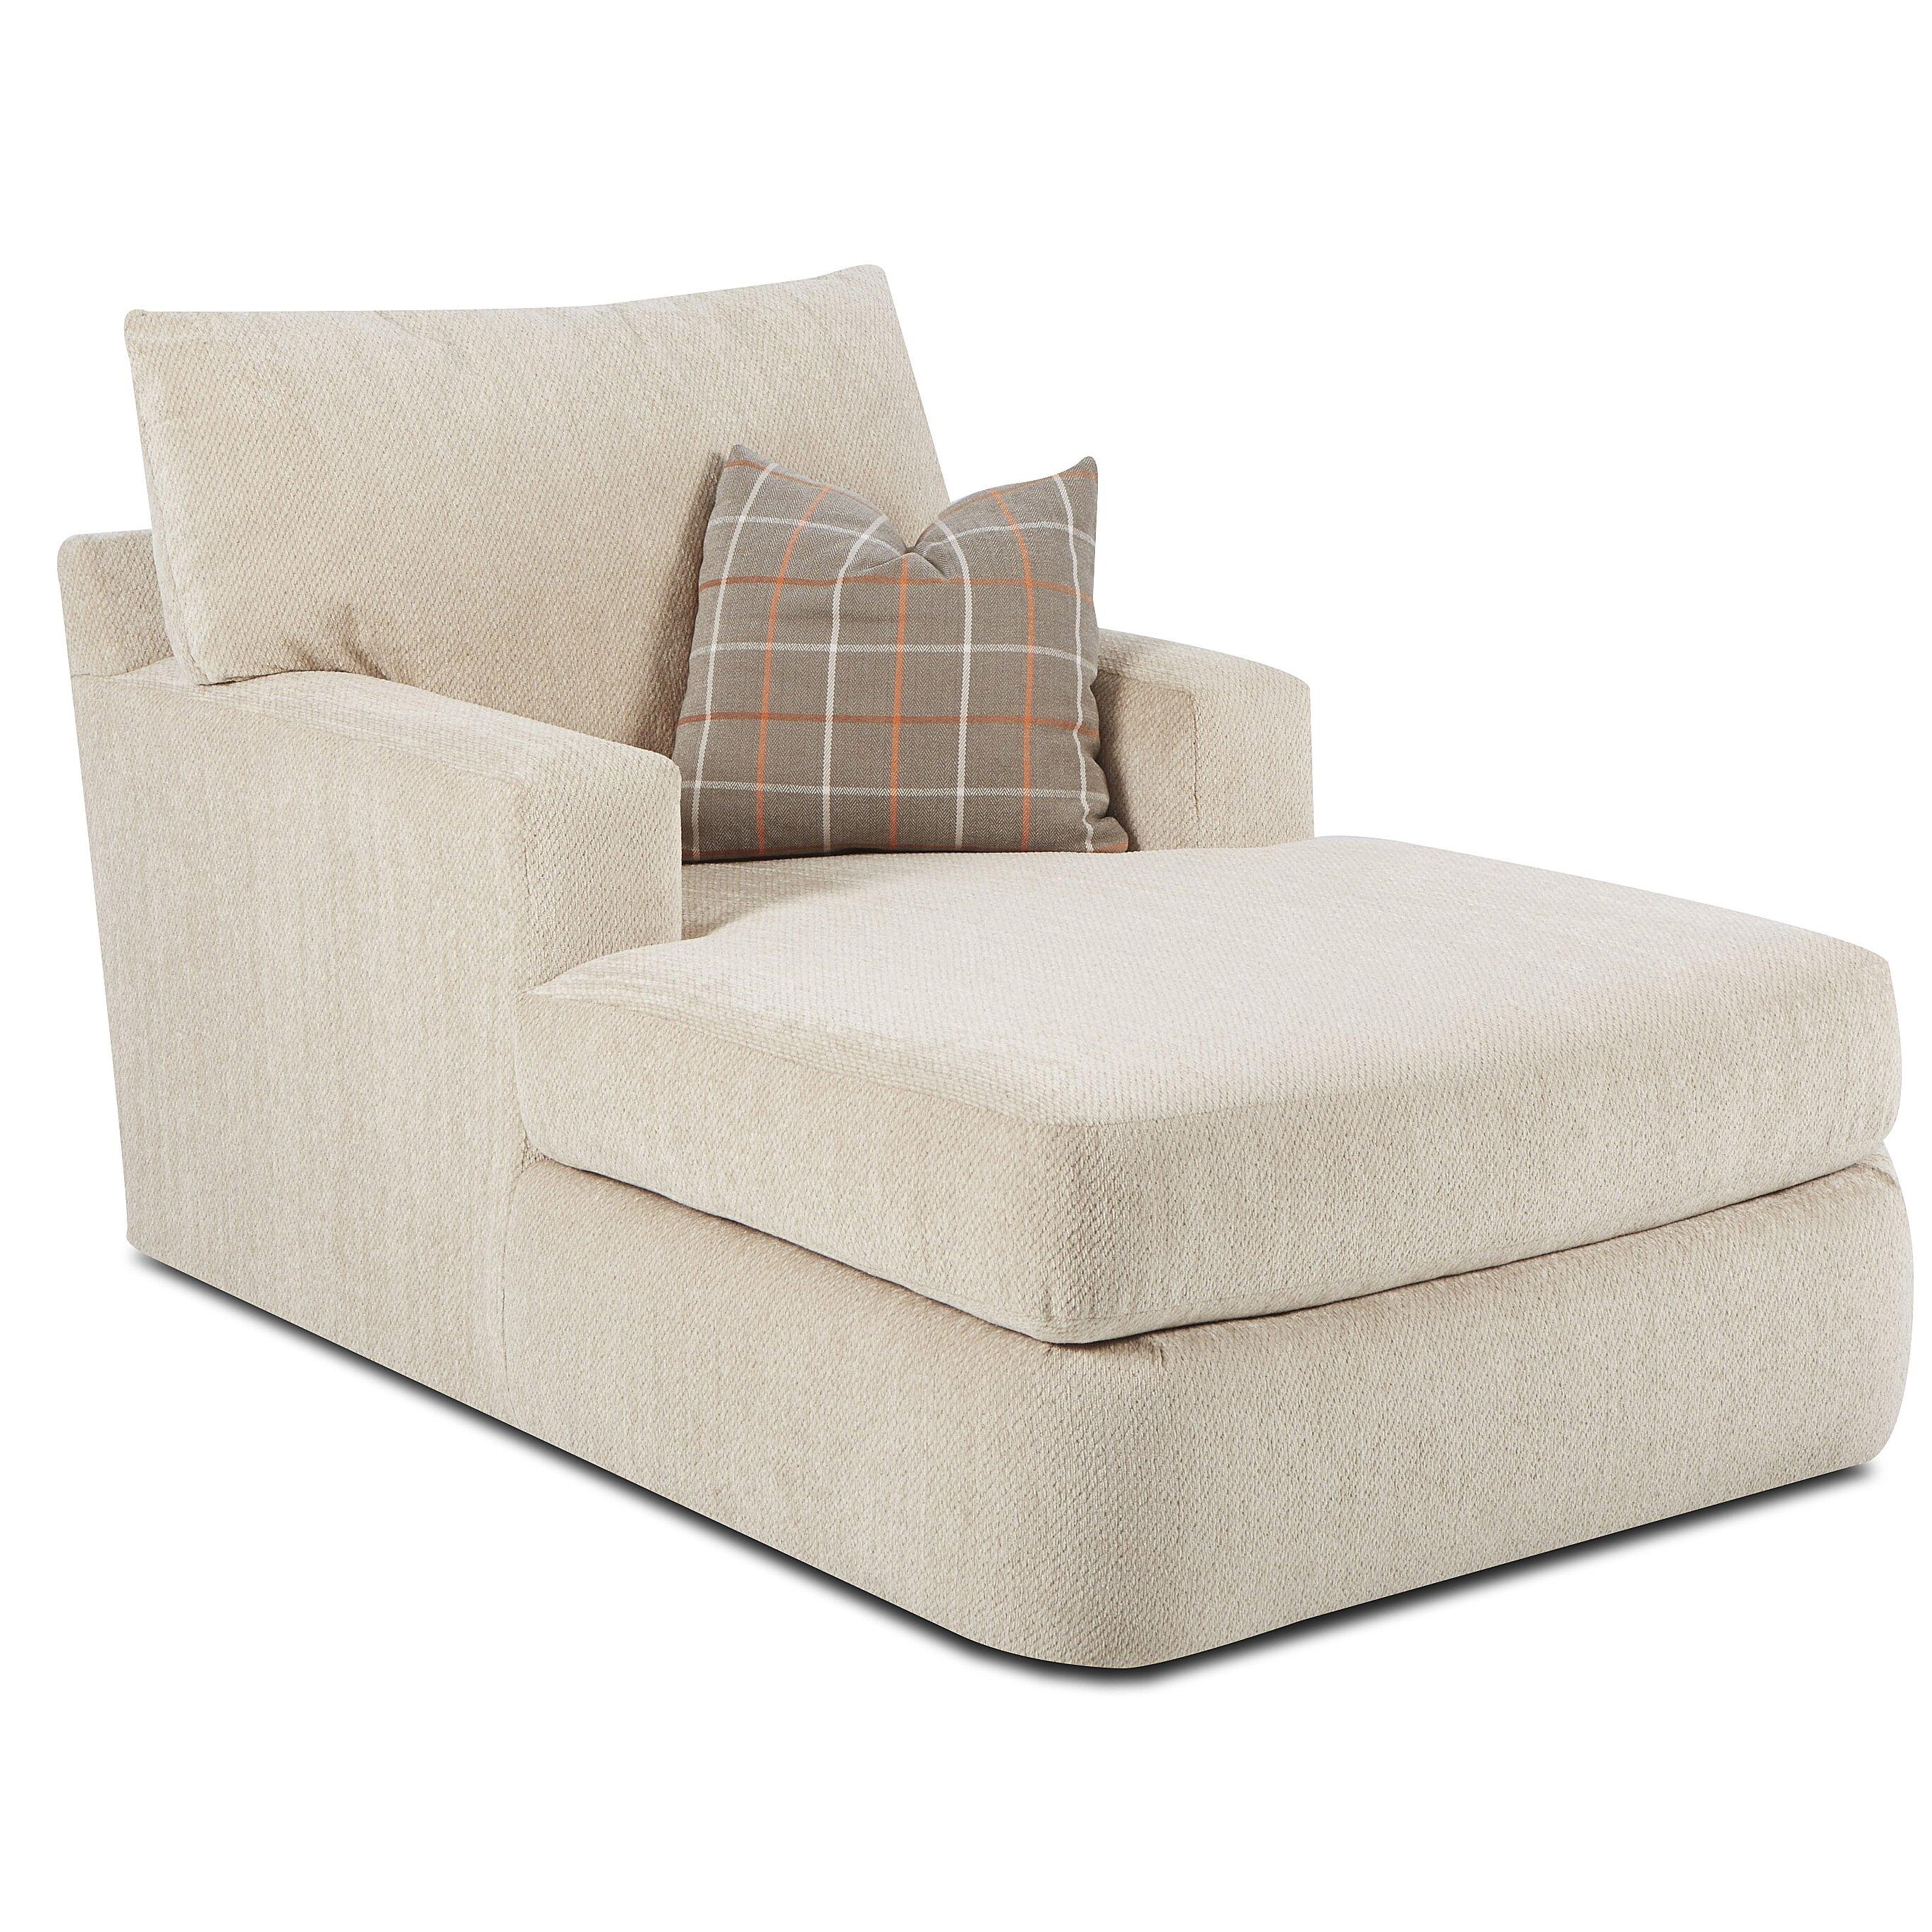 Small Chaise Longue For Bedroom Chaise Lounge Chairs Youll Love Wayfair